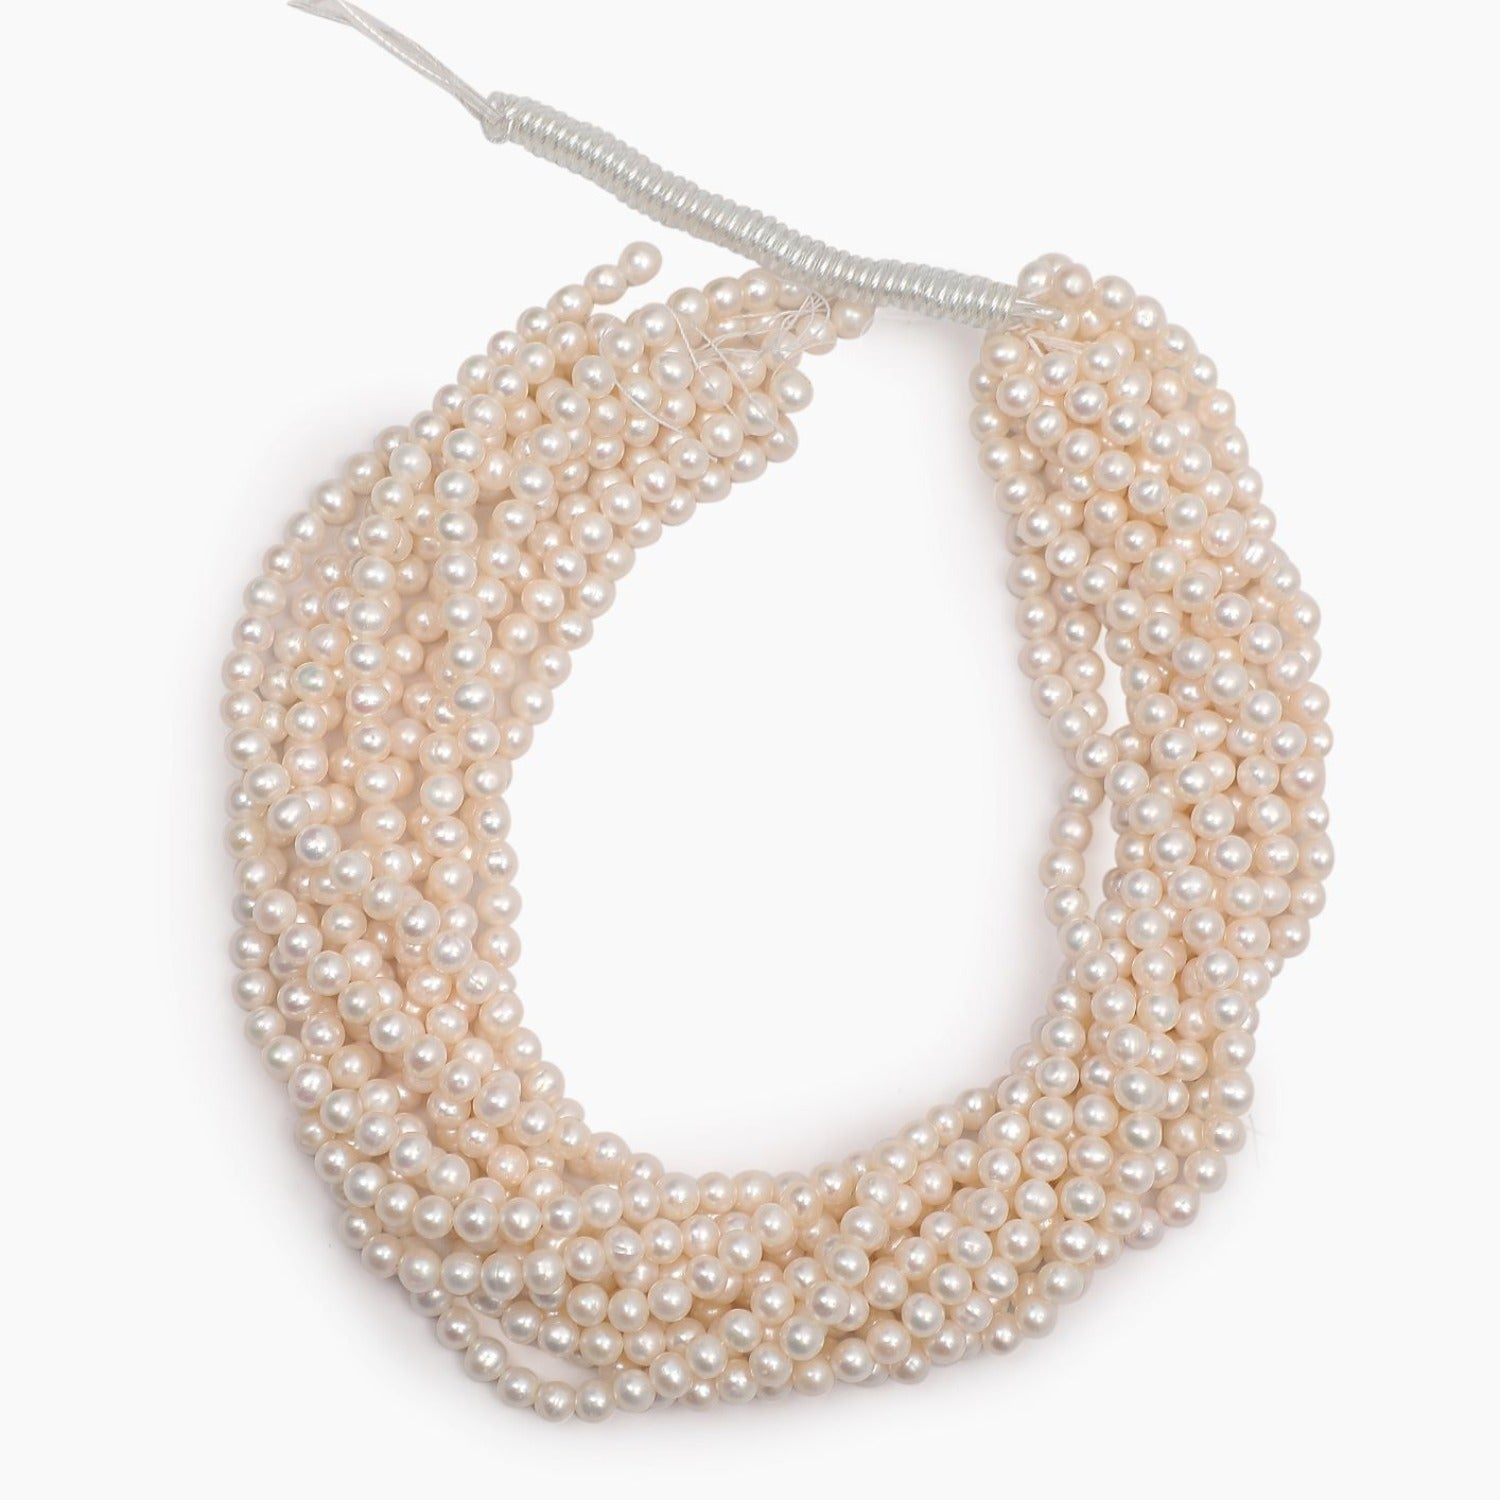 Freshwater White Round Pearls 5mm - Sold Per Strand